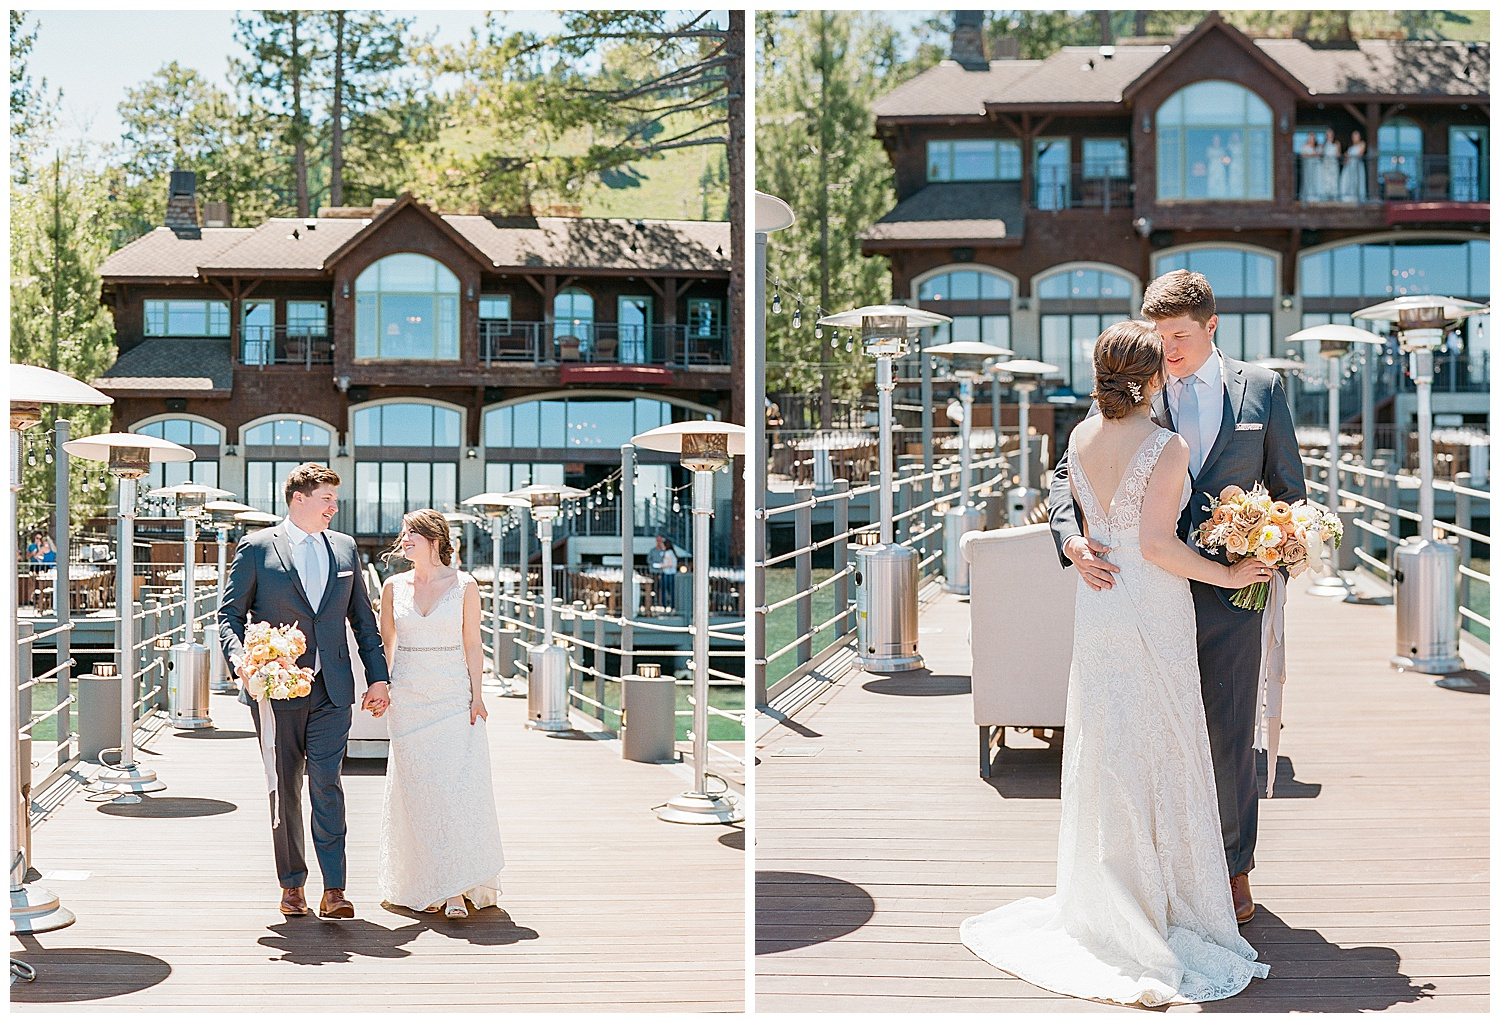 Janine_Licare_Photography_San_Francisco_Wedding_Photographer_Lake_Tahoe_West_Shore_Cafe_Colorful_Summer_0053.jpg